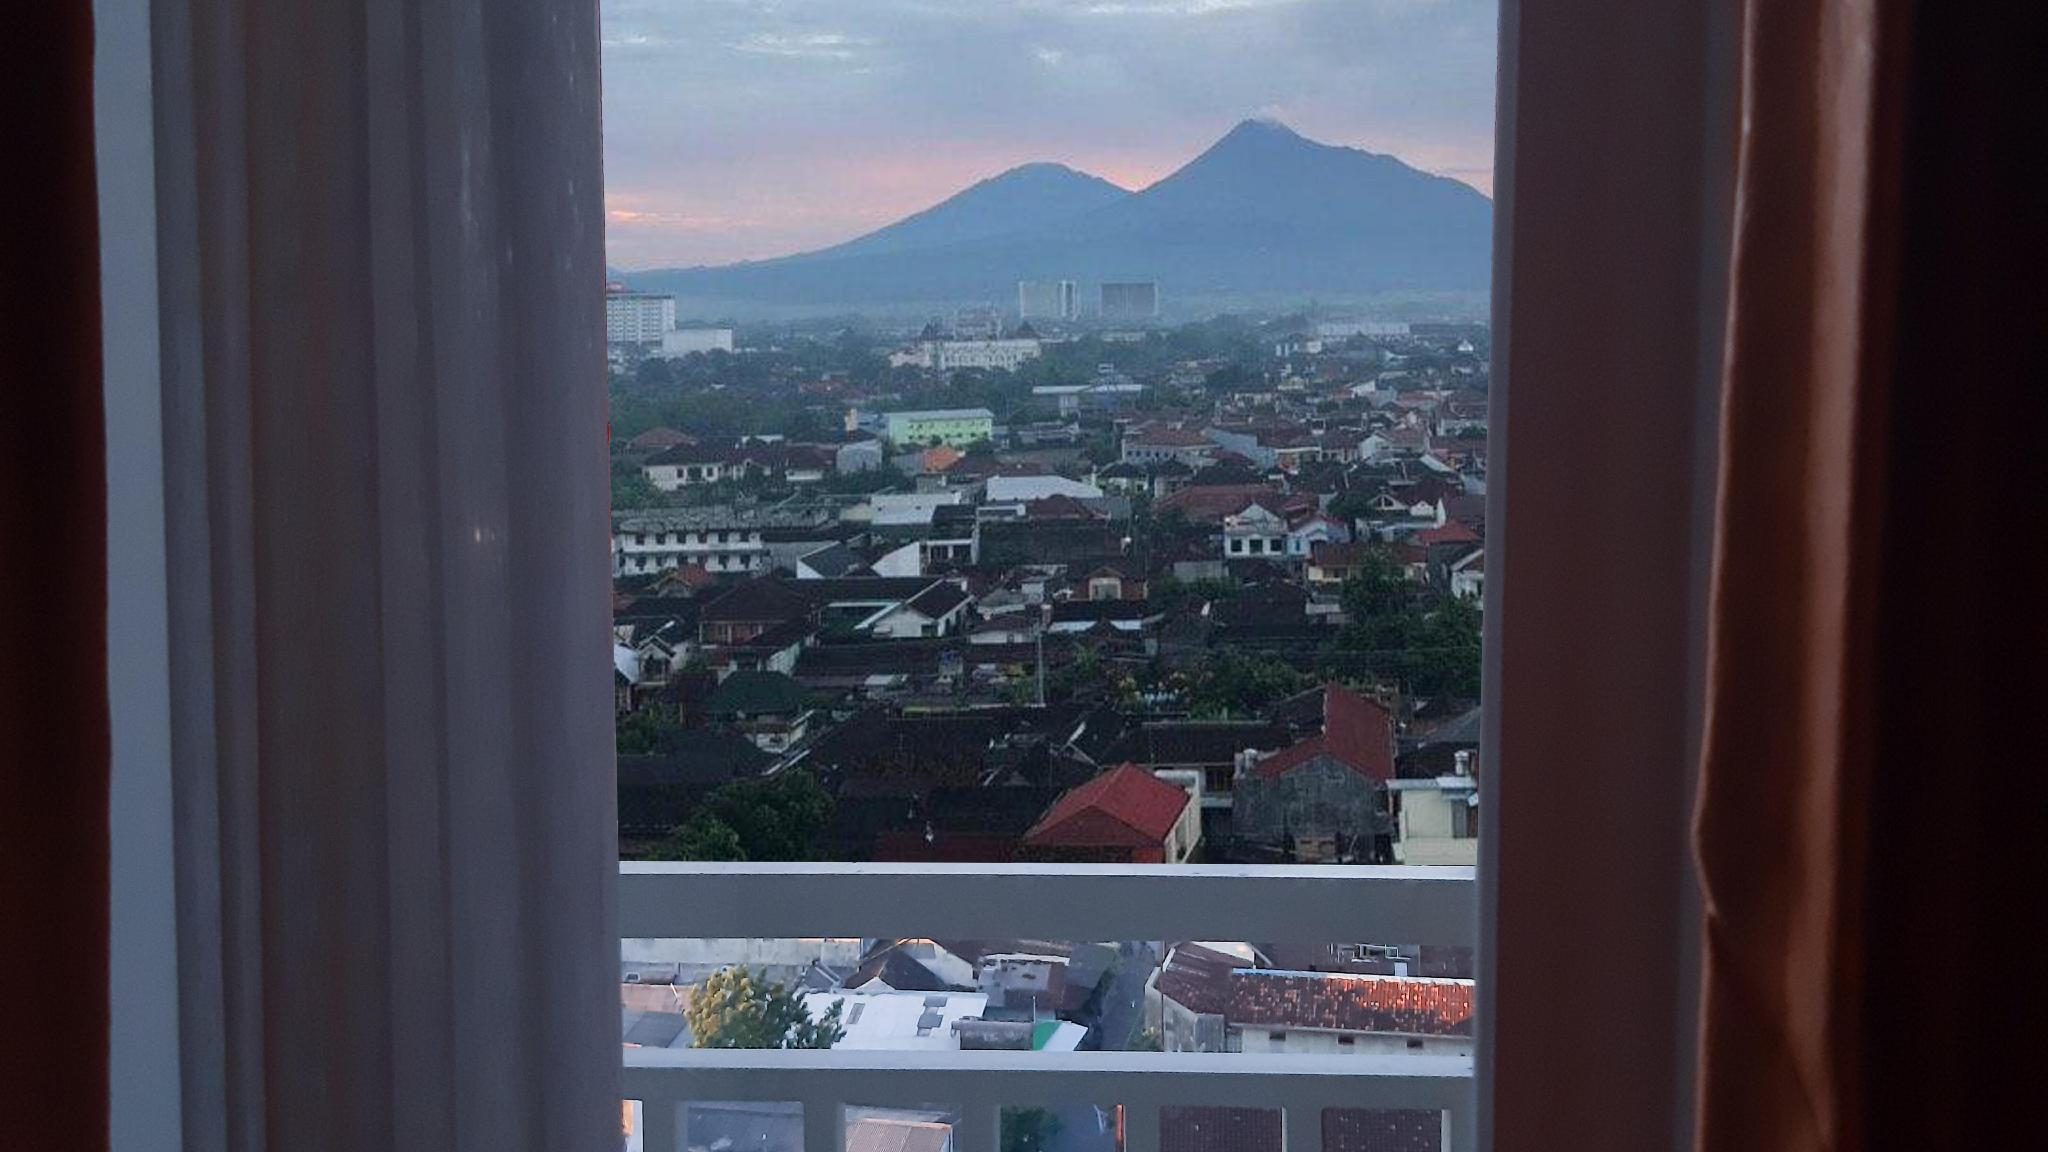 Apartment Room With Volcano View Near Ugm